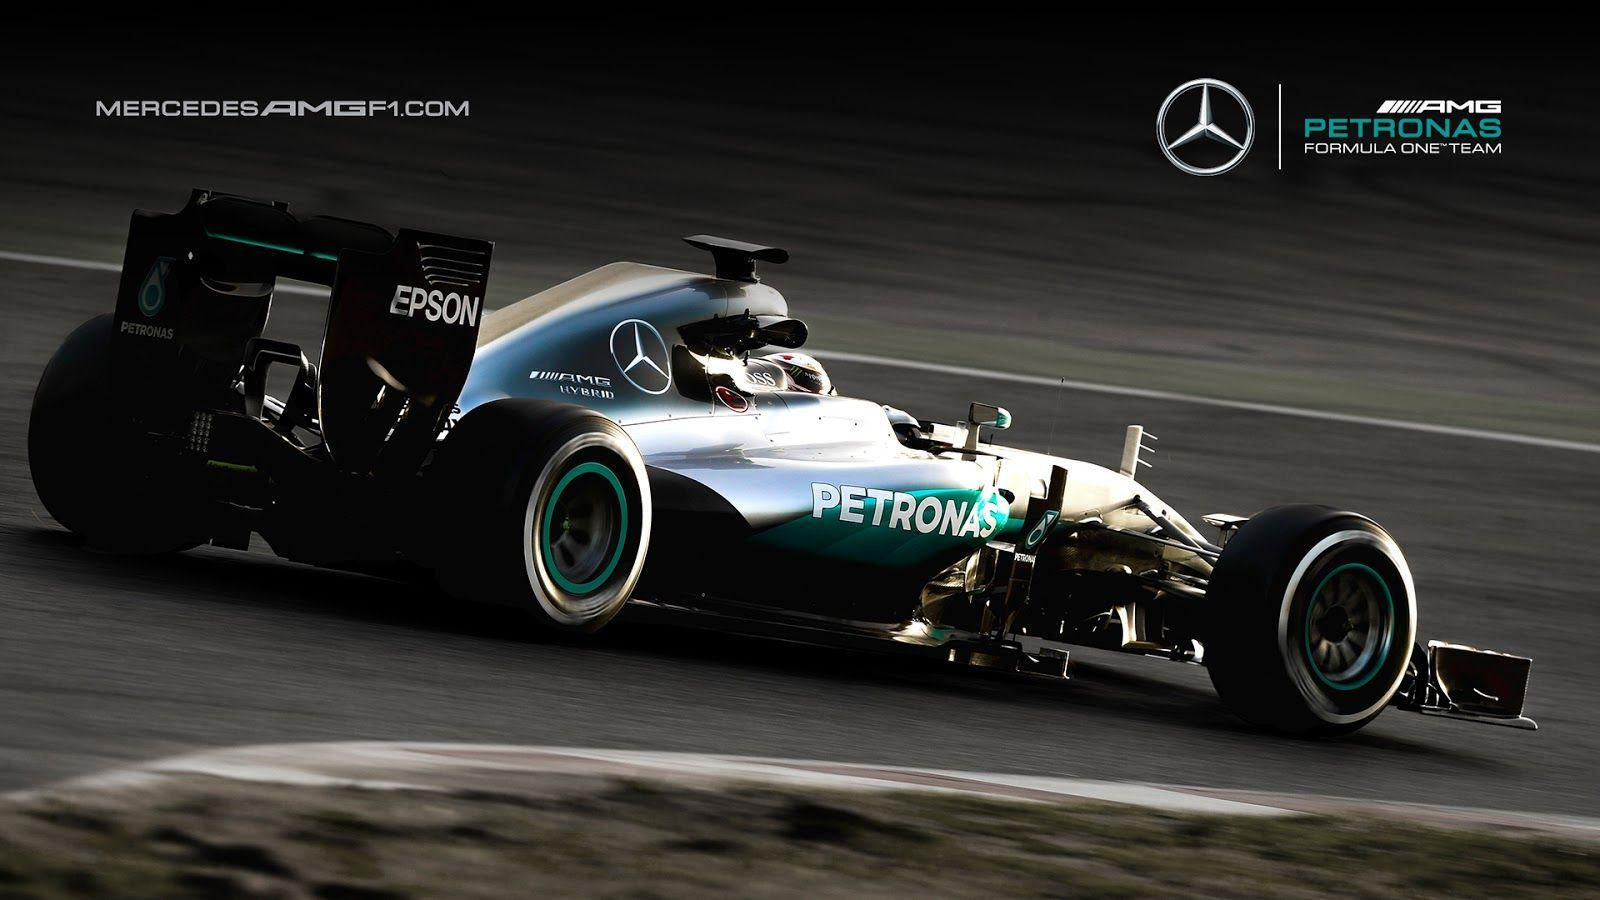 Mercedes F1 Wallpapers   Top Mercedes F1 Backgrounds 1600x900